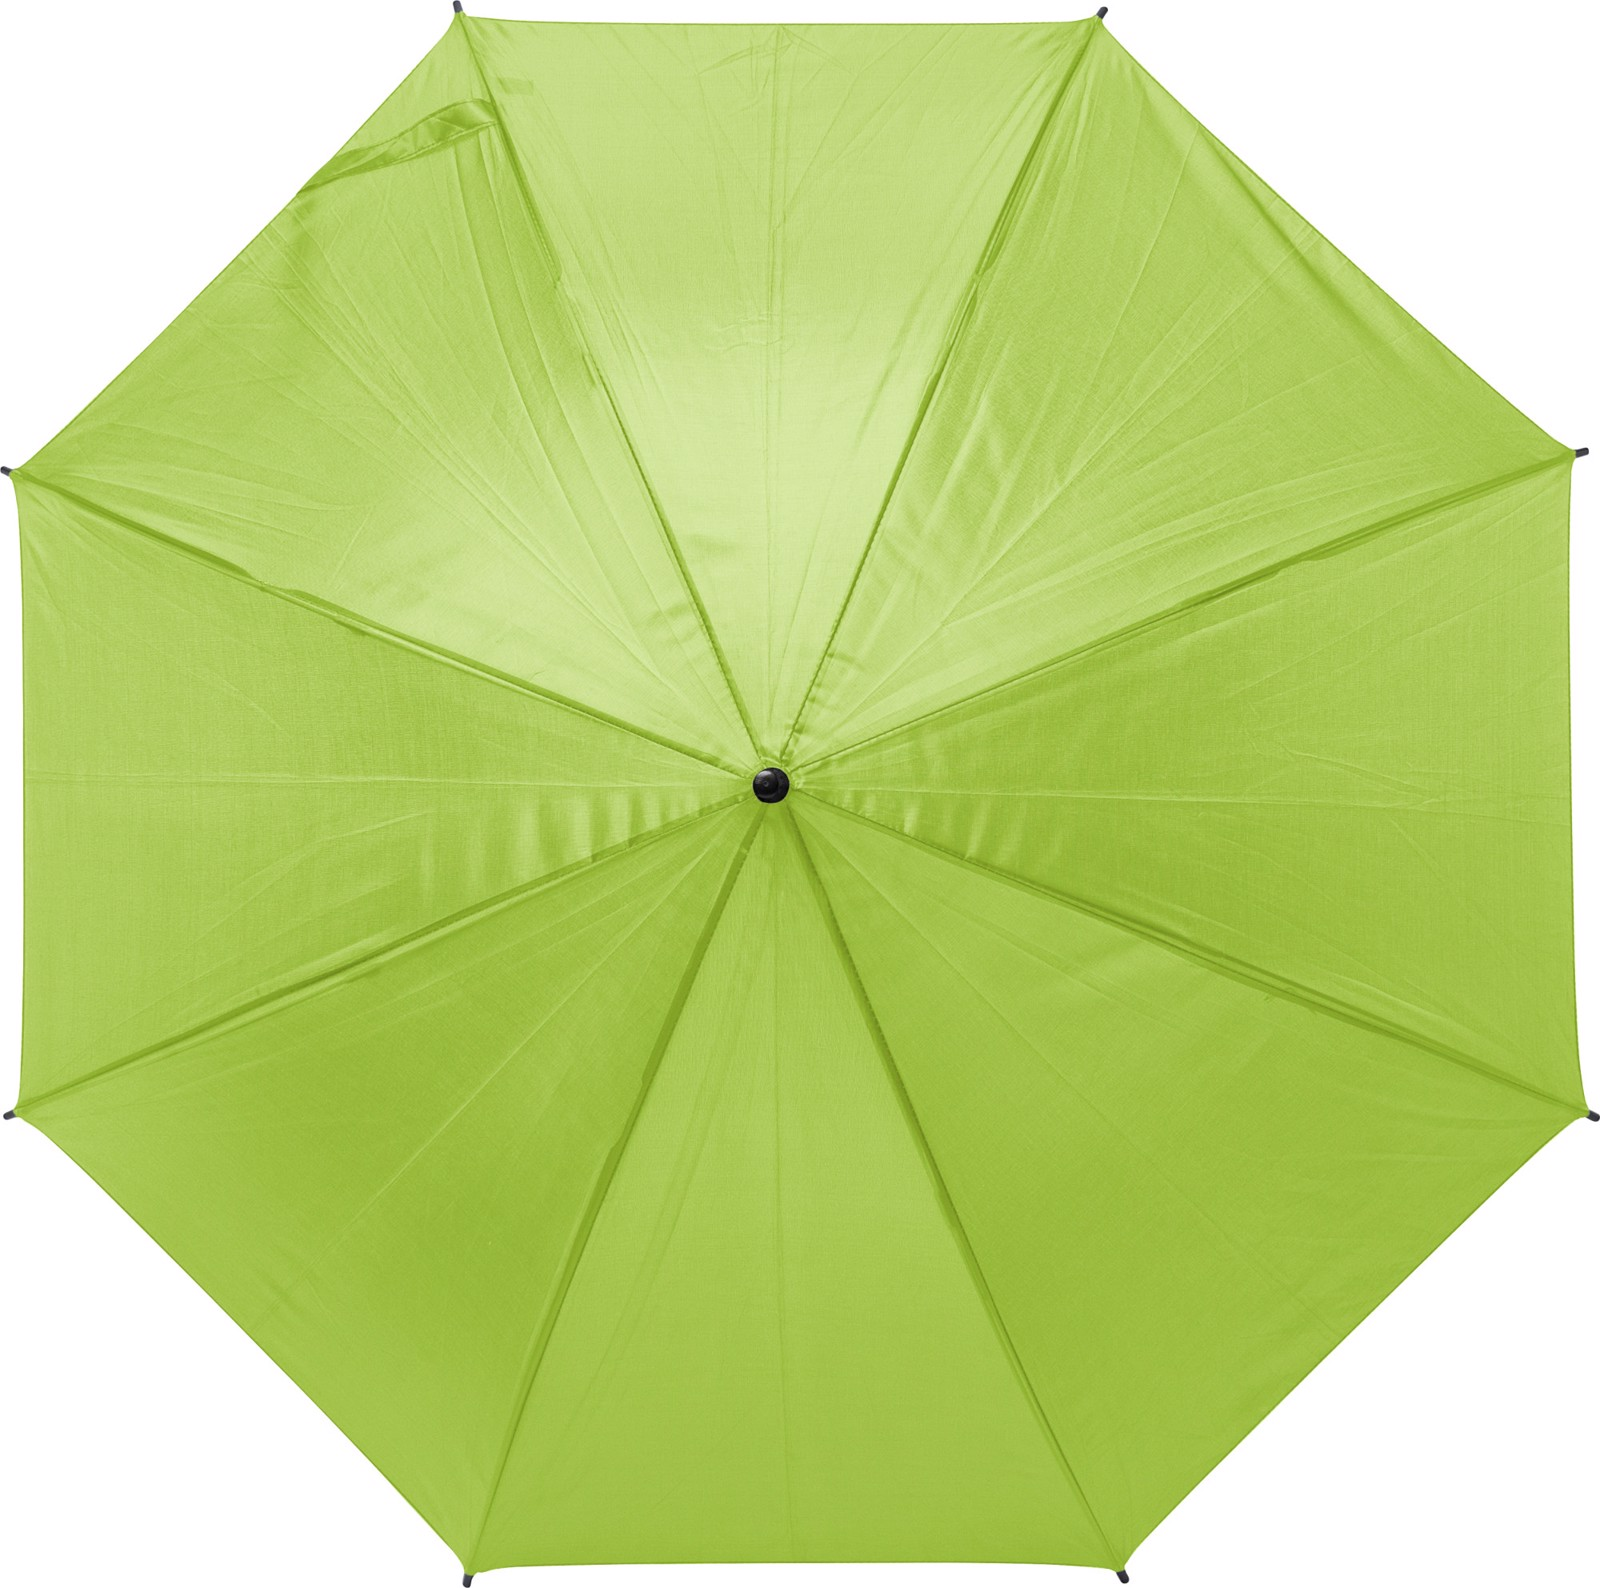 Polyester (170T) umbrella - Lime